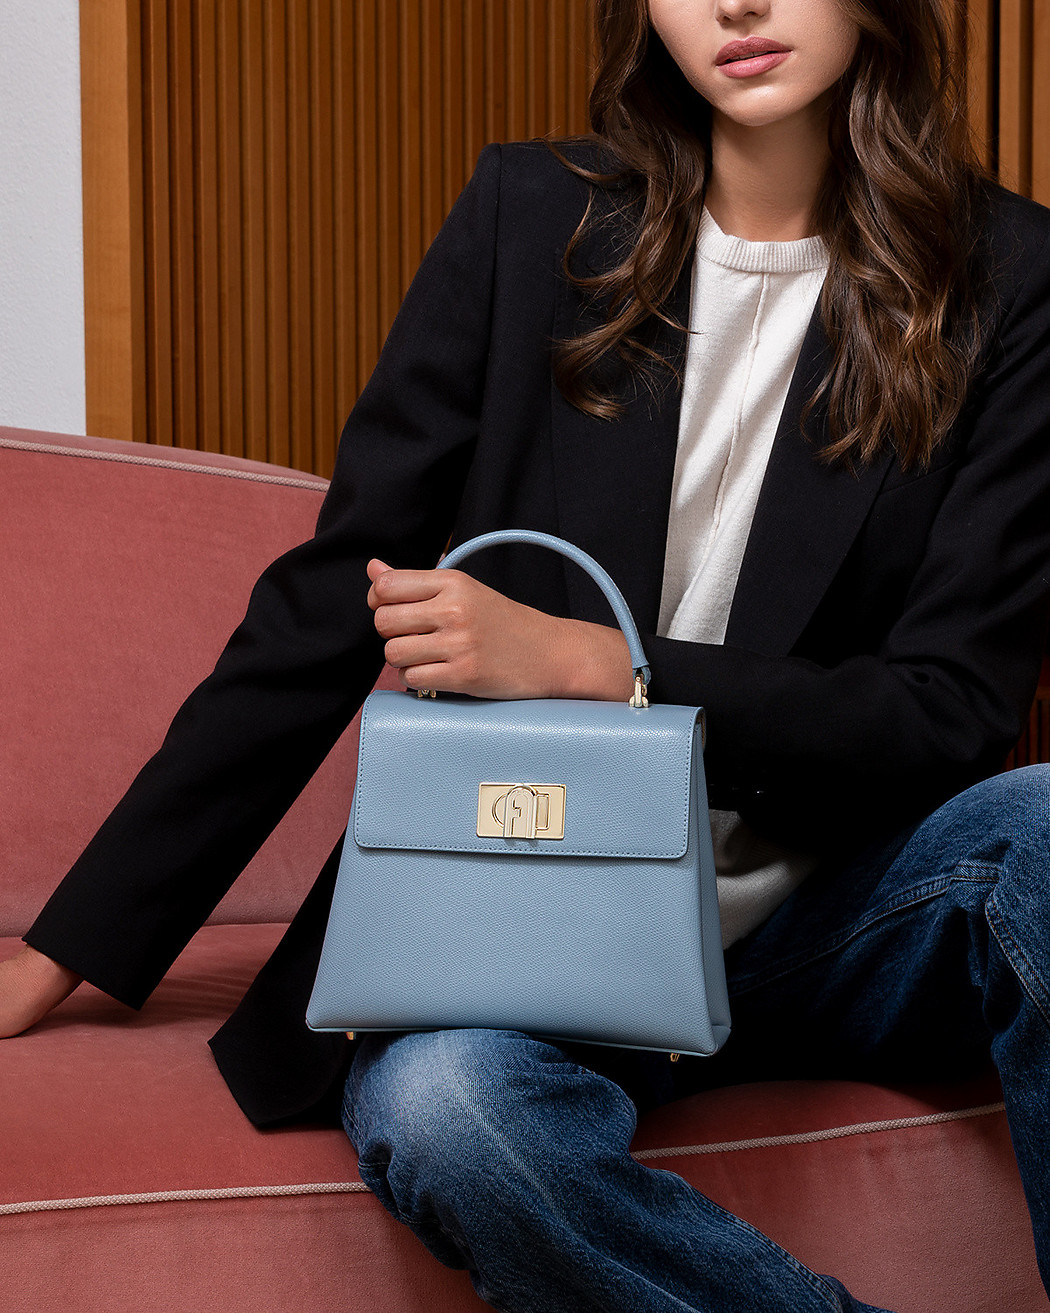 A white female wearing denim jeans, a white t-shirt and a black blazer holds a light blue Furla 1927 S Top Handle in her hand while sitting in a Milanese home environment.